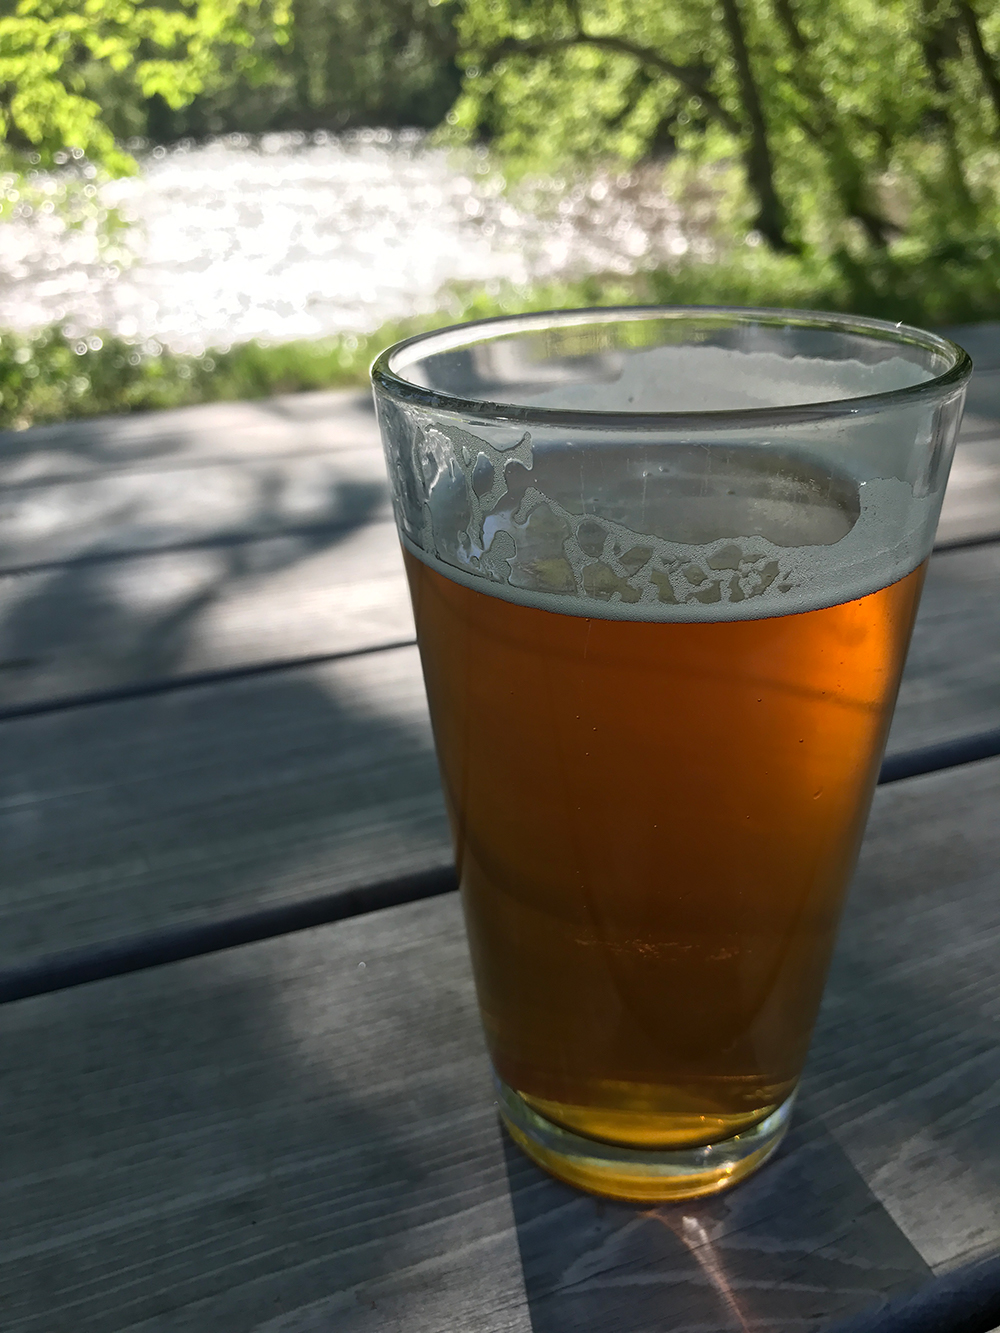 Enjoy a locally-brewed craft beer by the river at New Belgium in Asheville, NC.